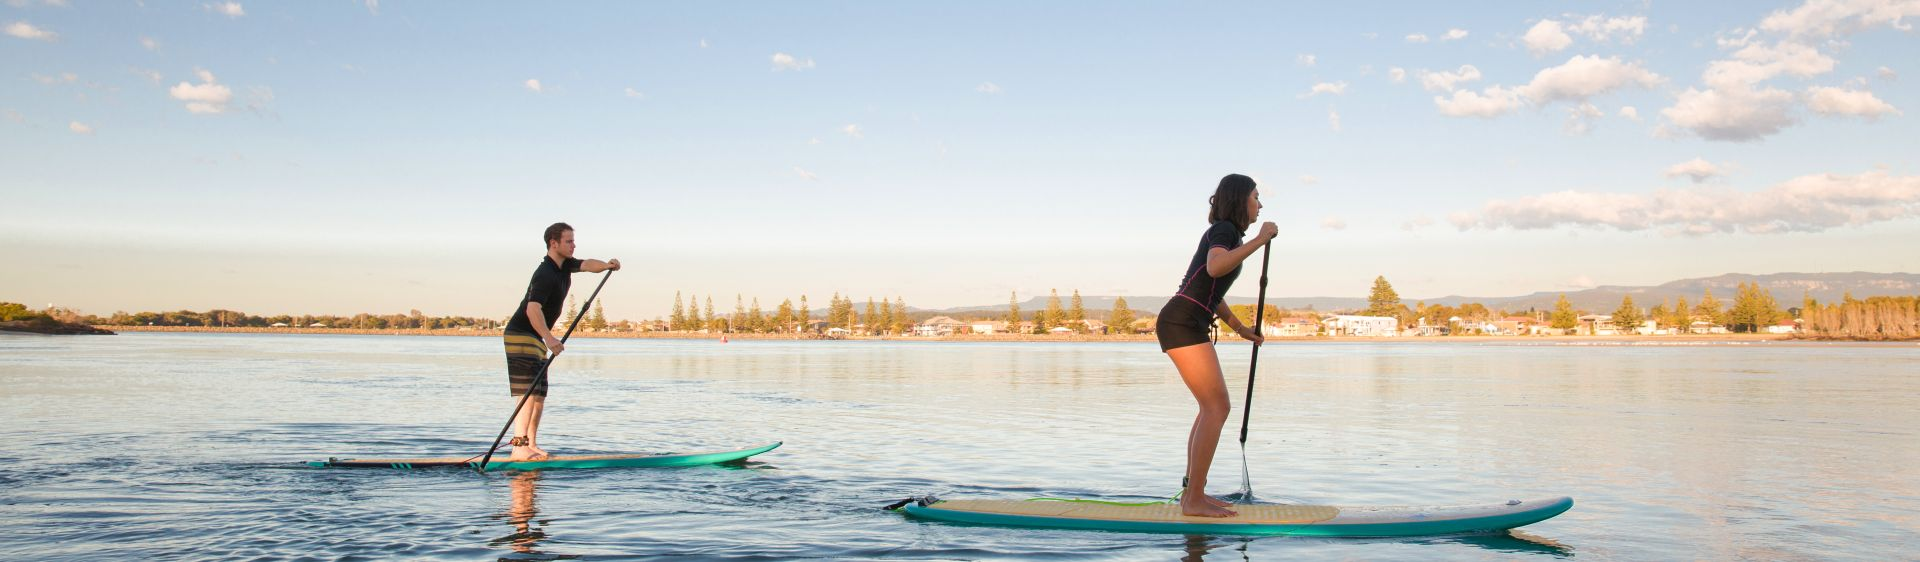 Couple stand-up paddleboarding at Lake Illawarra, Shellharbour, South Coast NSW